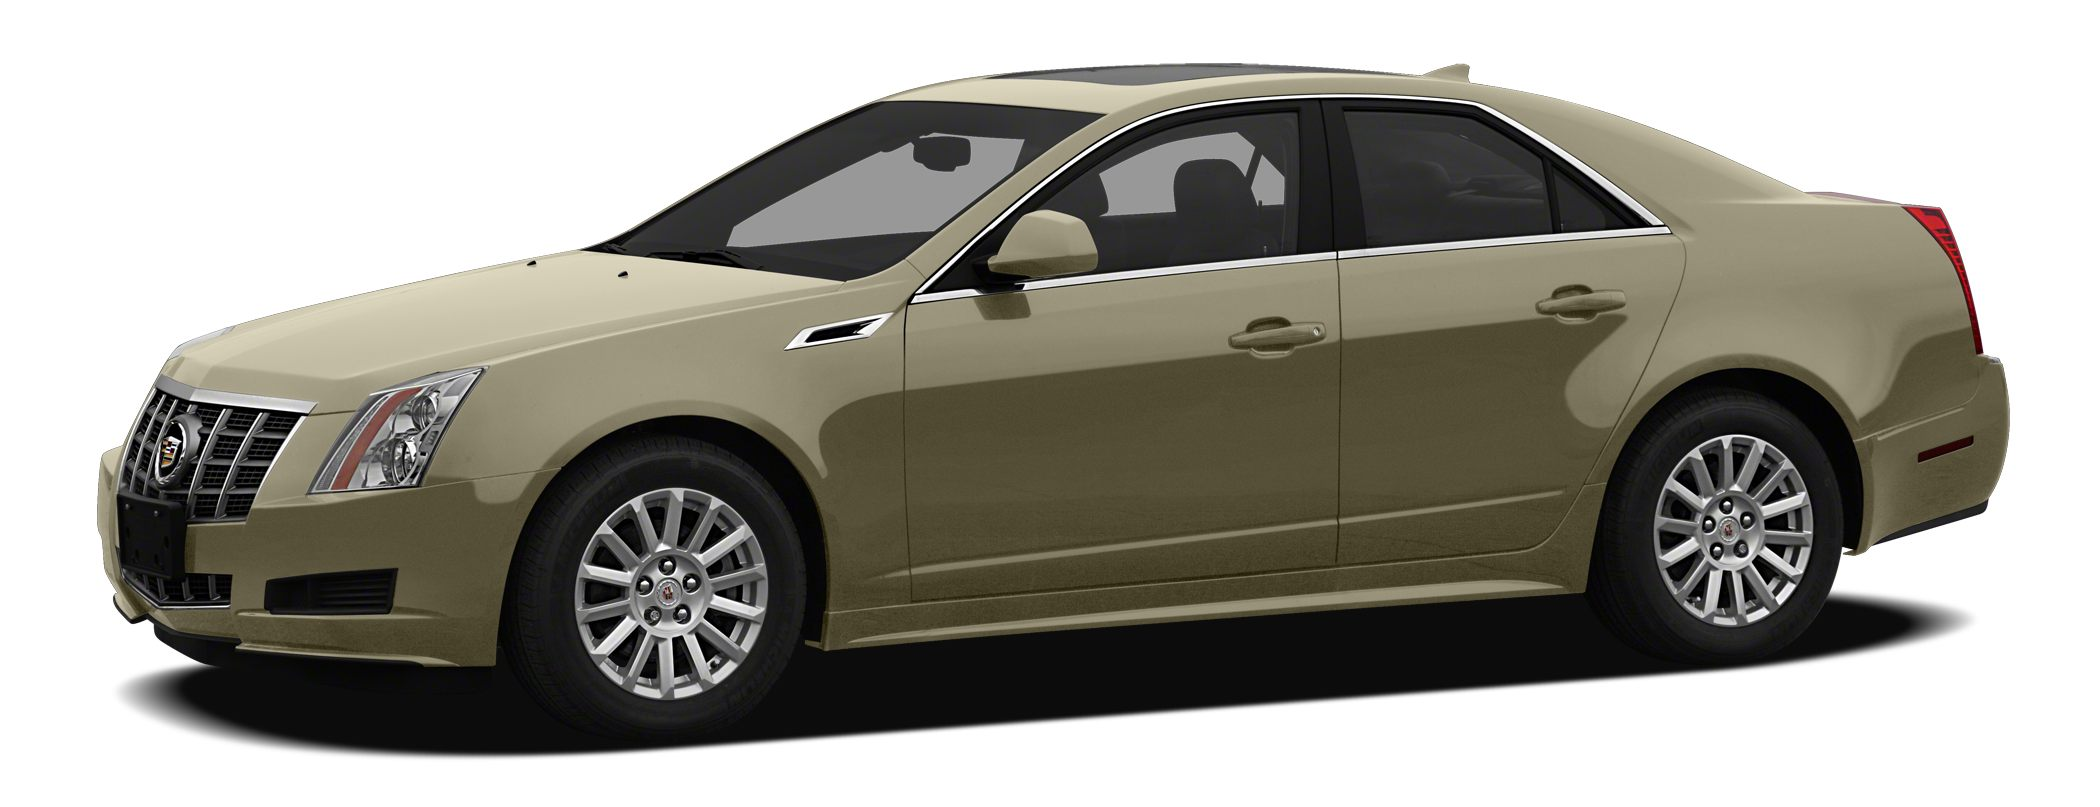 2012 Cadillac CTS Luxury This vehicle really shows it was cared for by the previous owner You sho